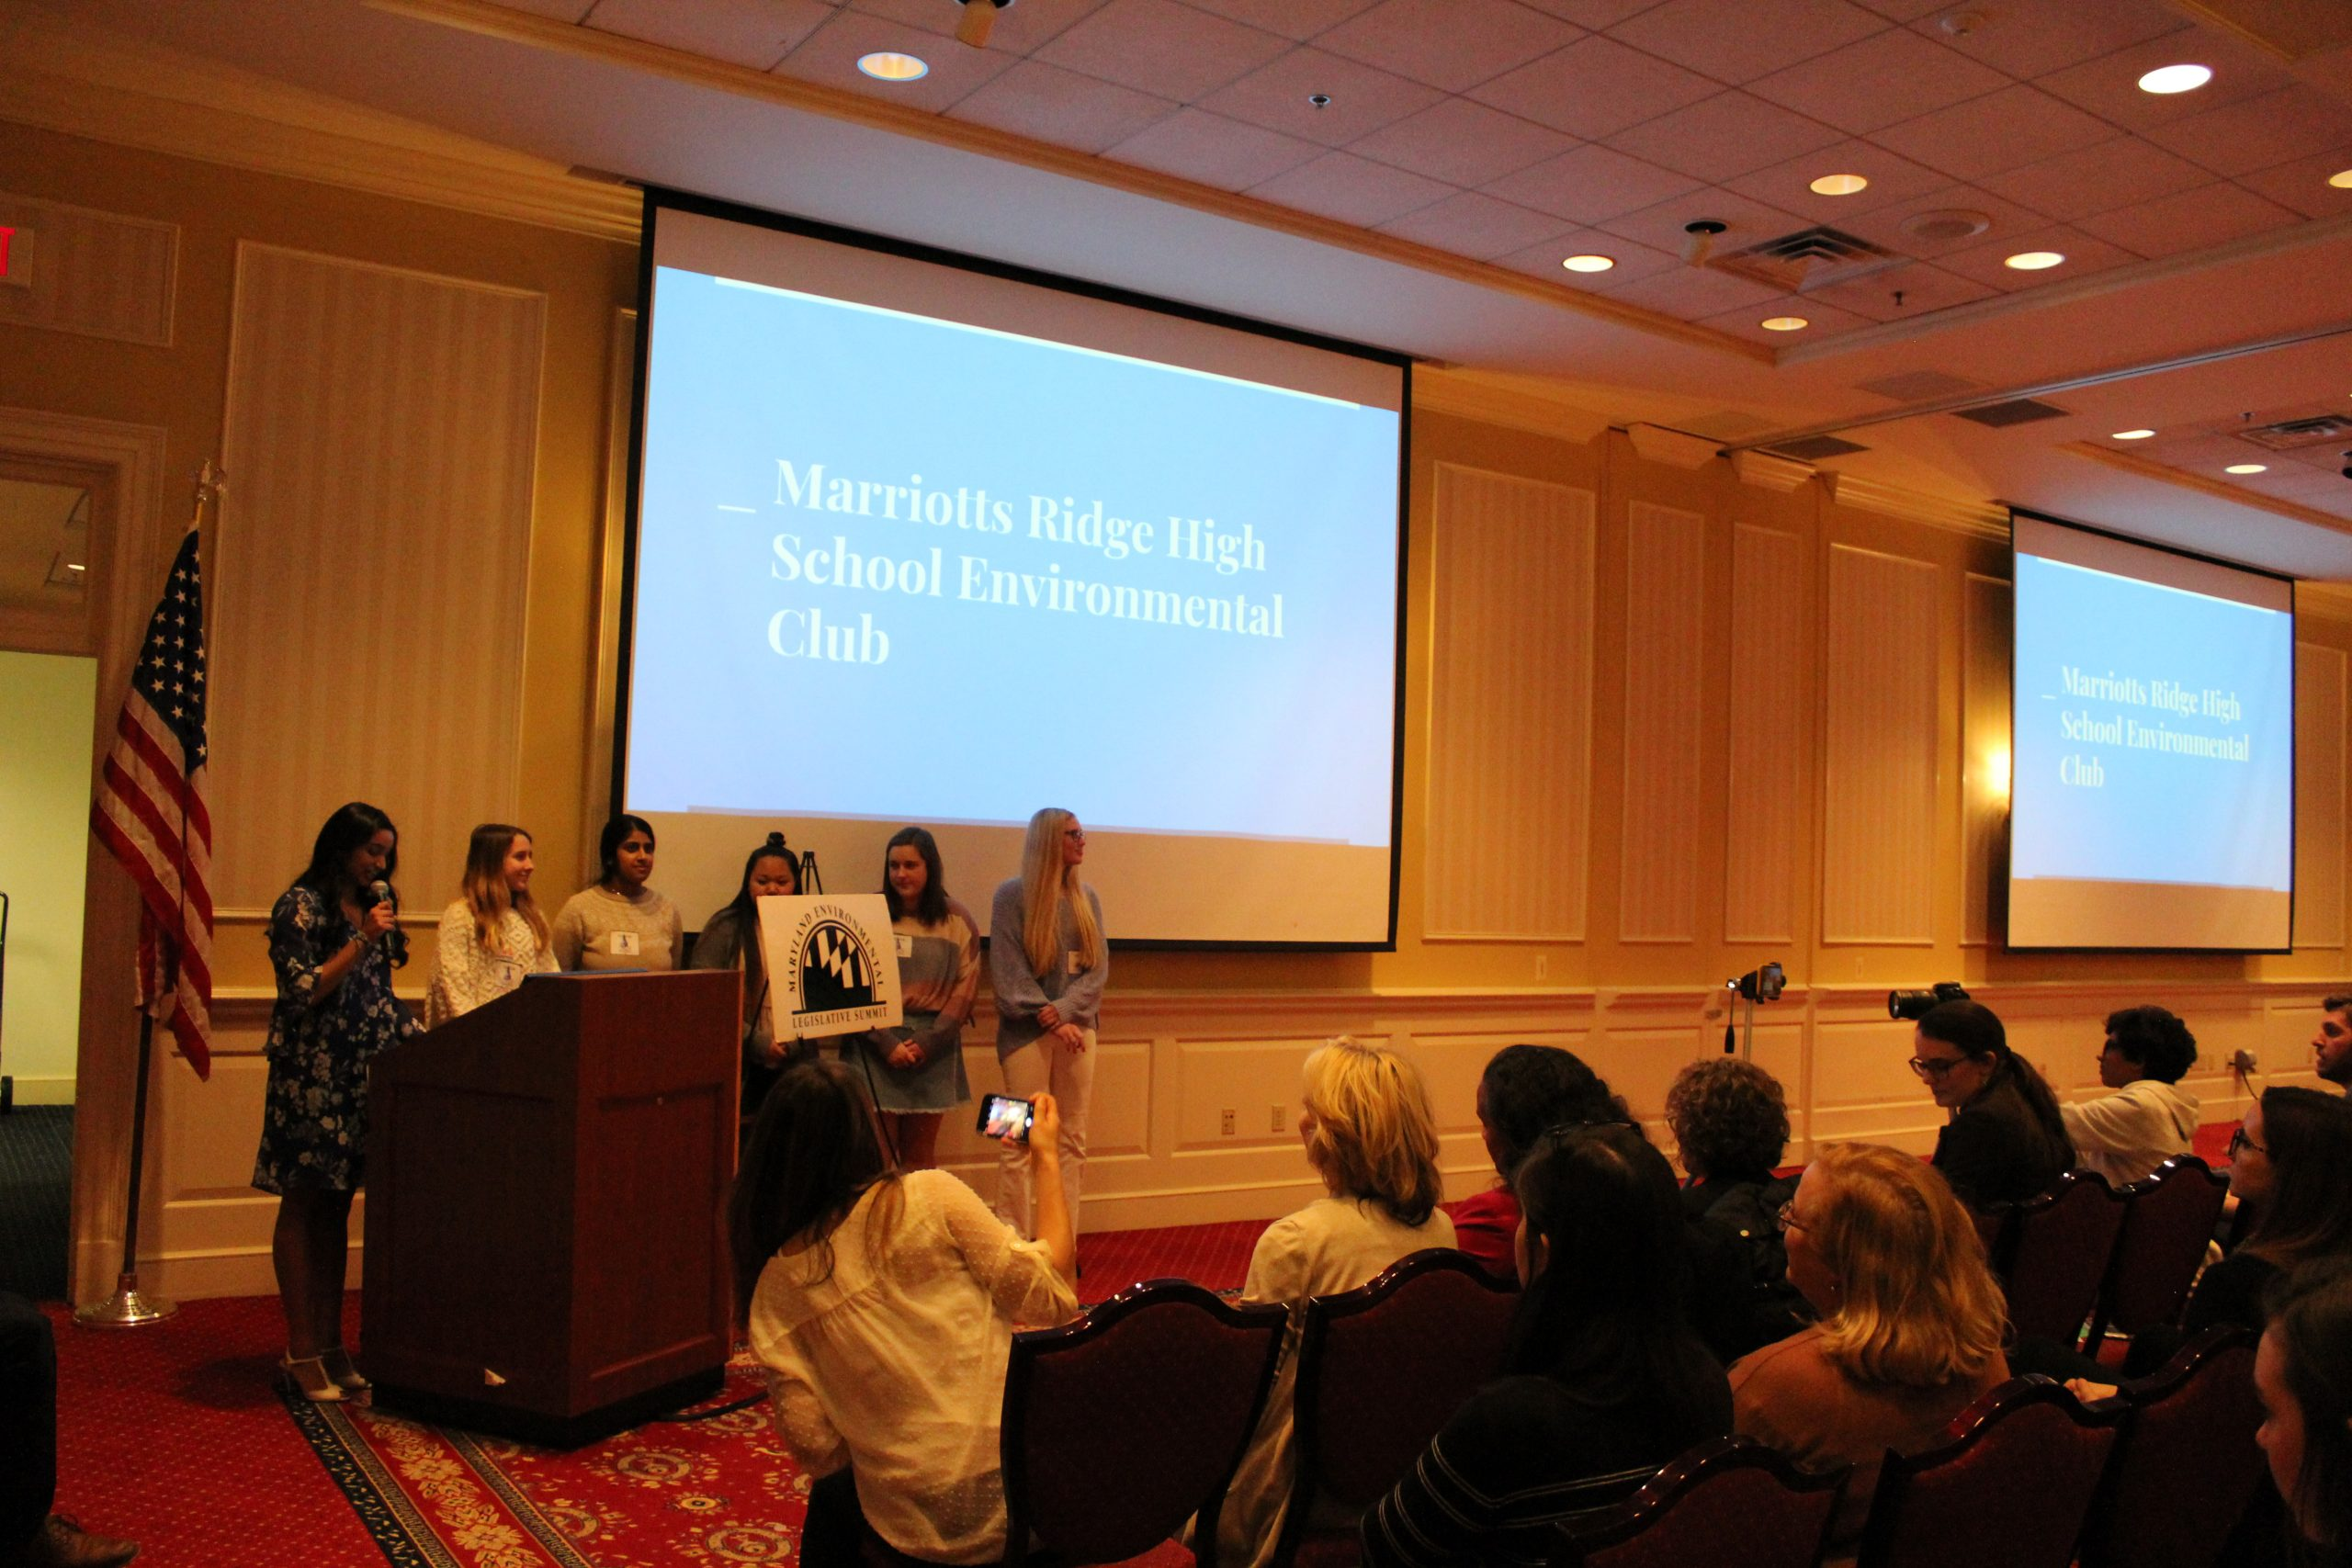 Marriotts Ridge High School Environmental Club presenting